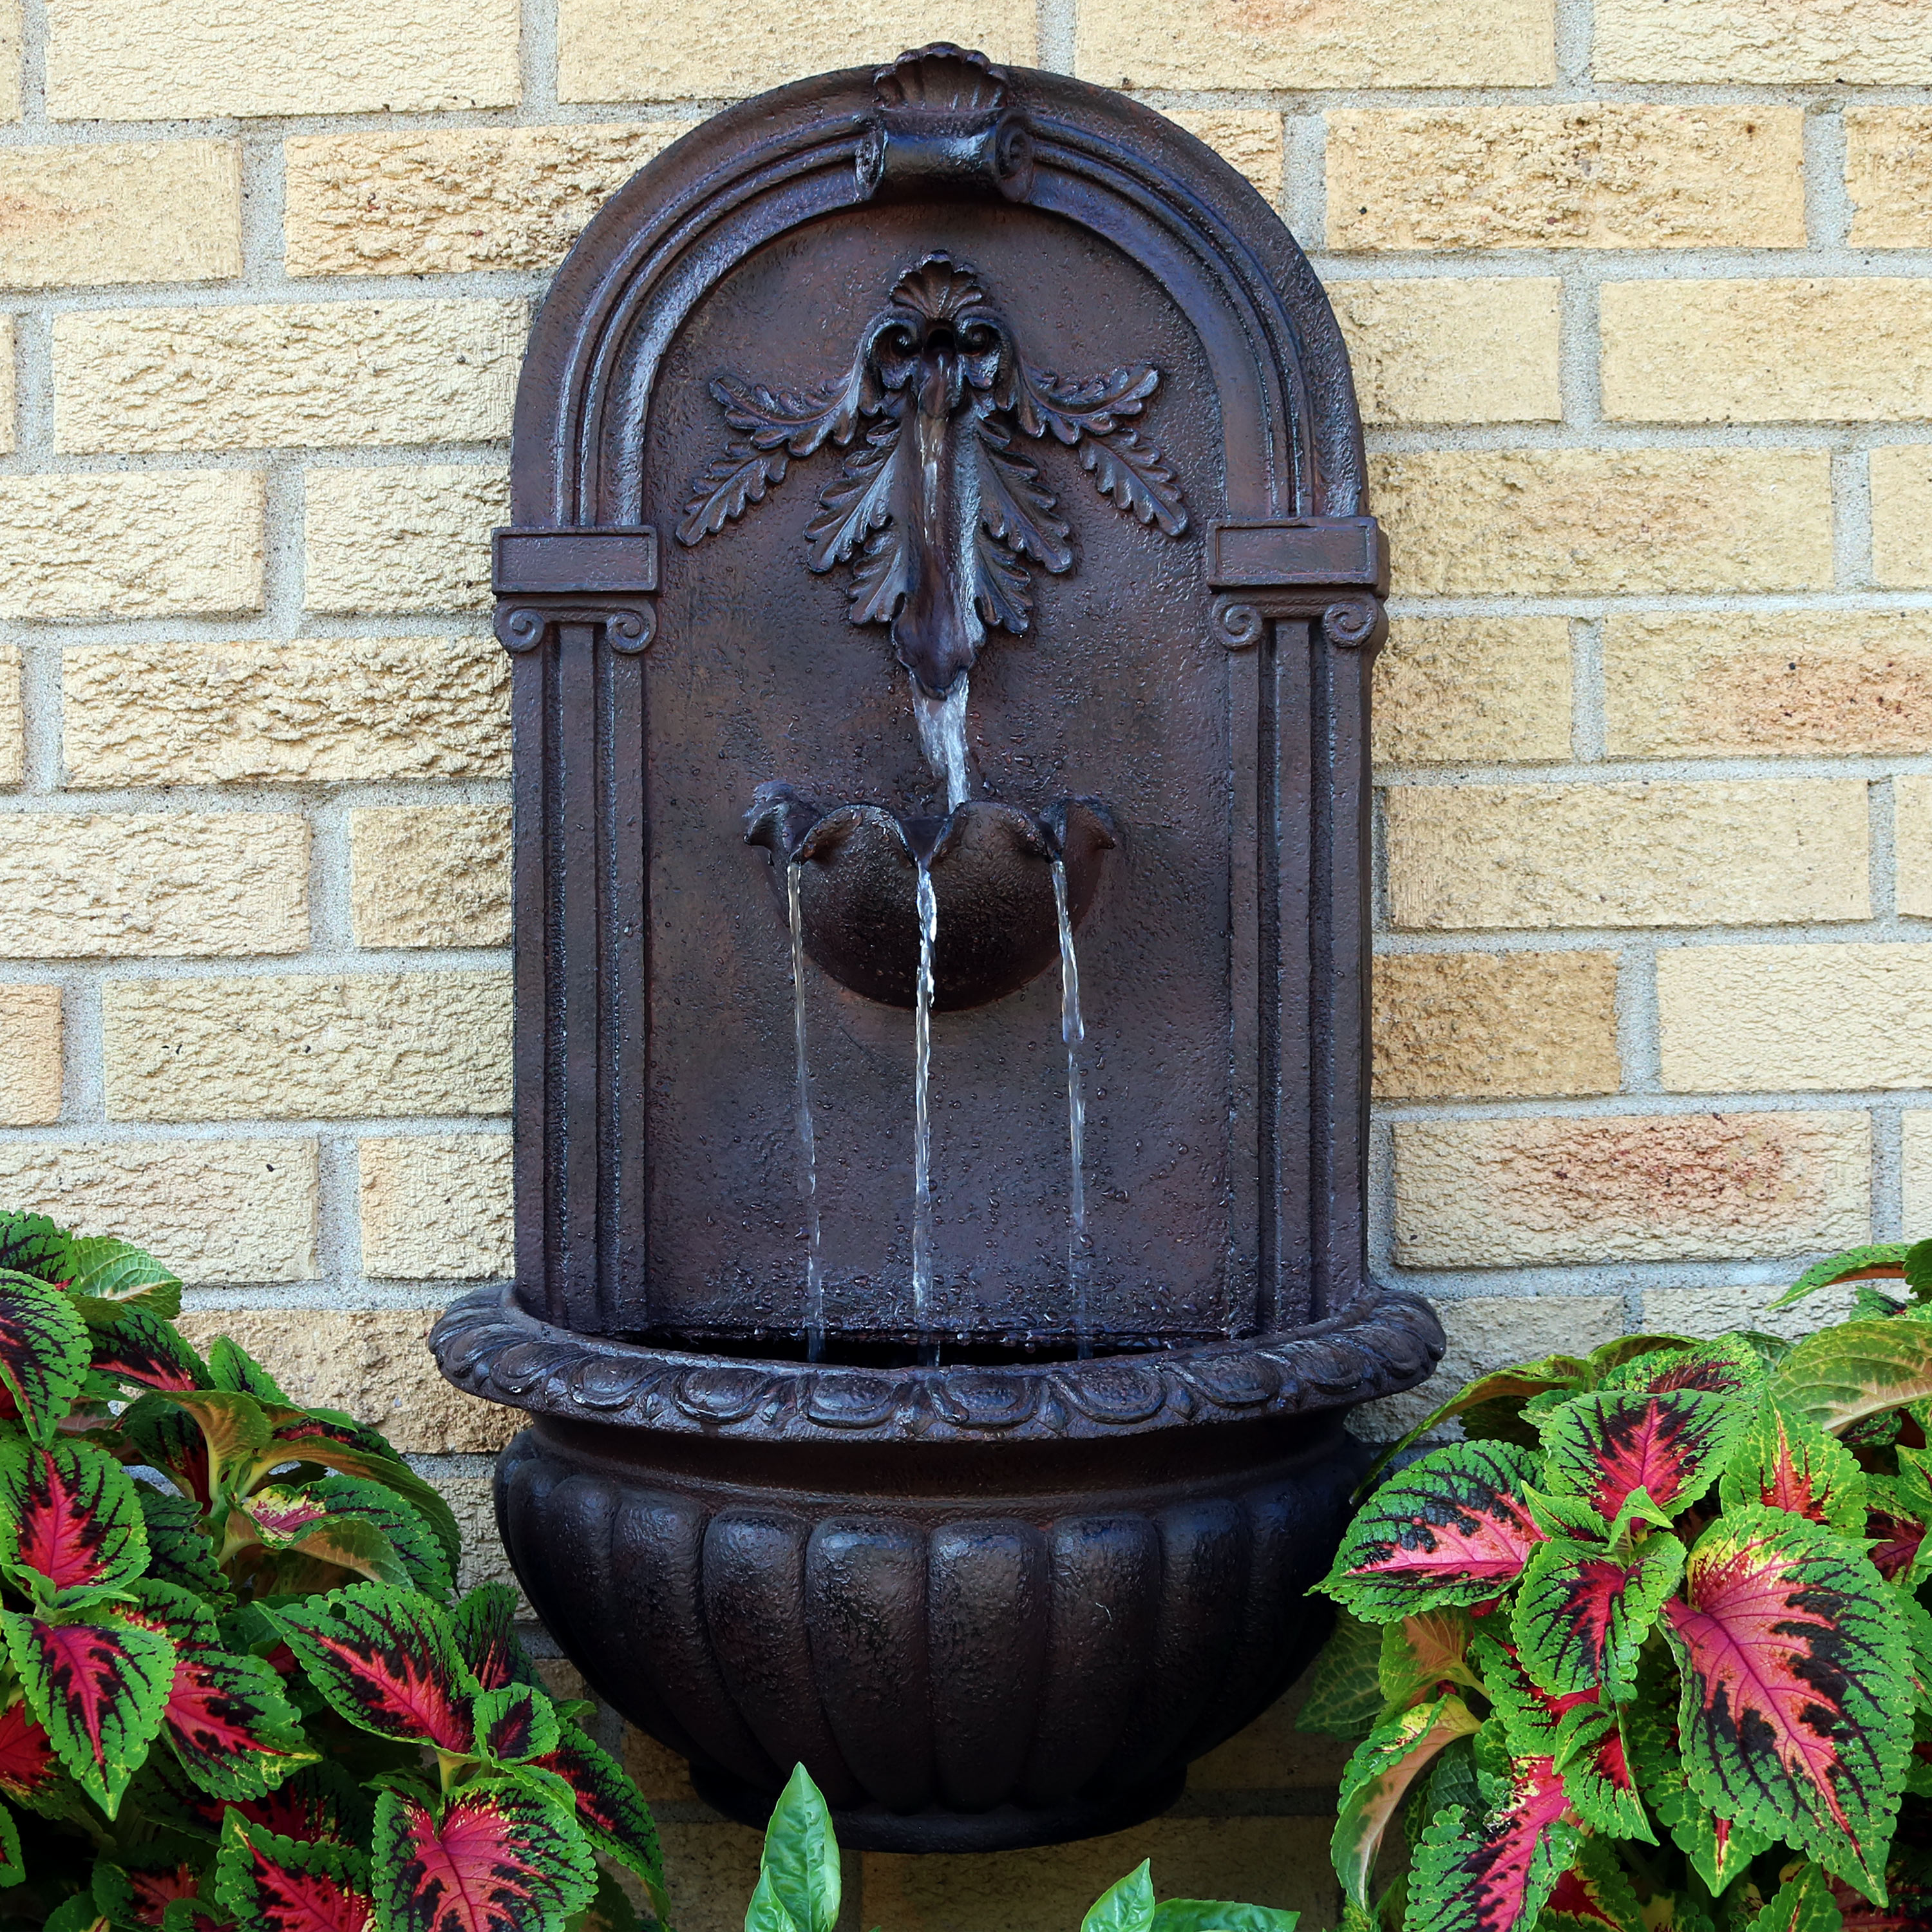 Sunnydaze Florence Solar-on-Demand Wall Fountain, Iron Finish, Solar on Demand Feature